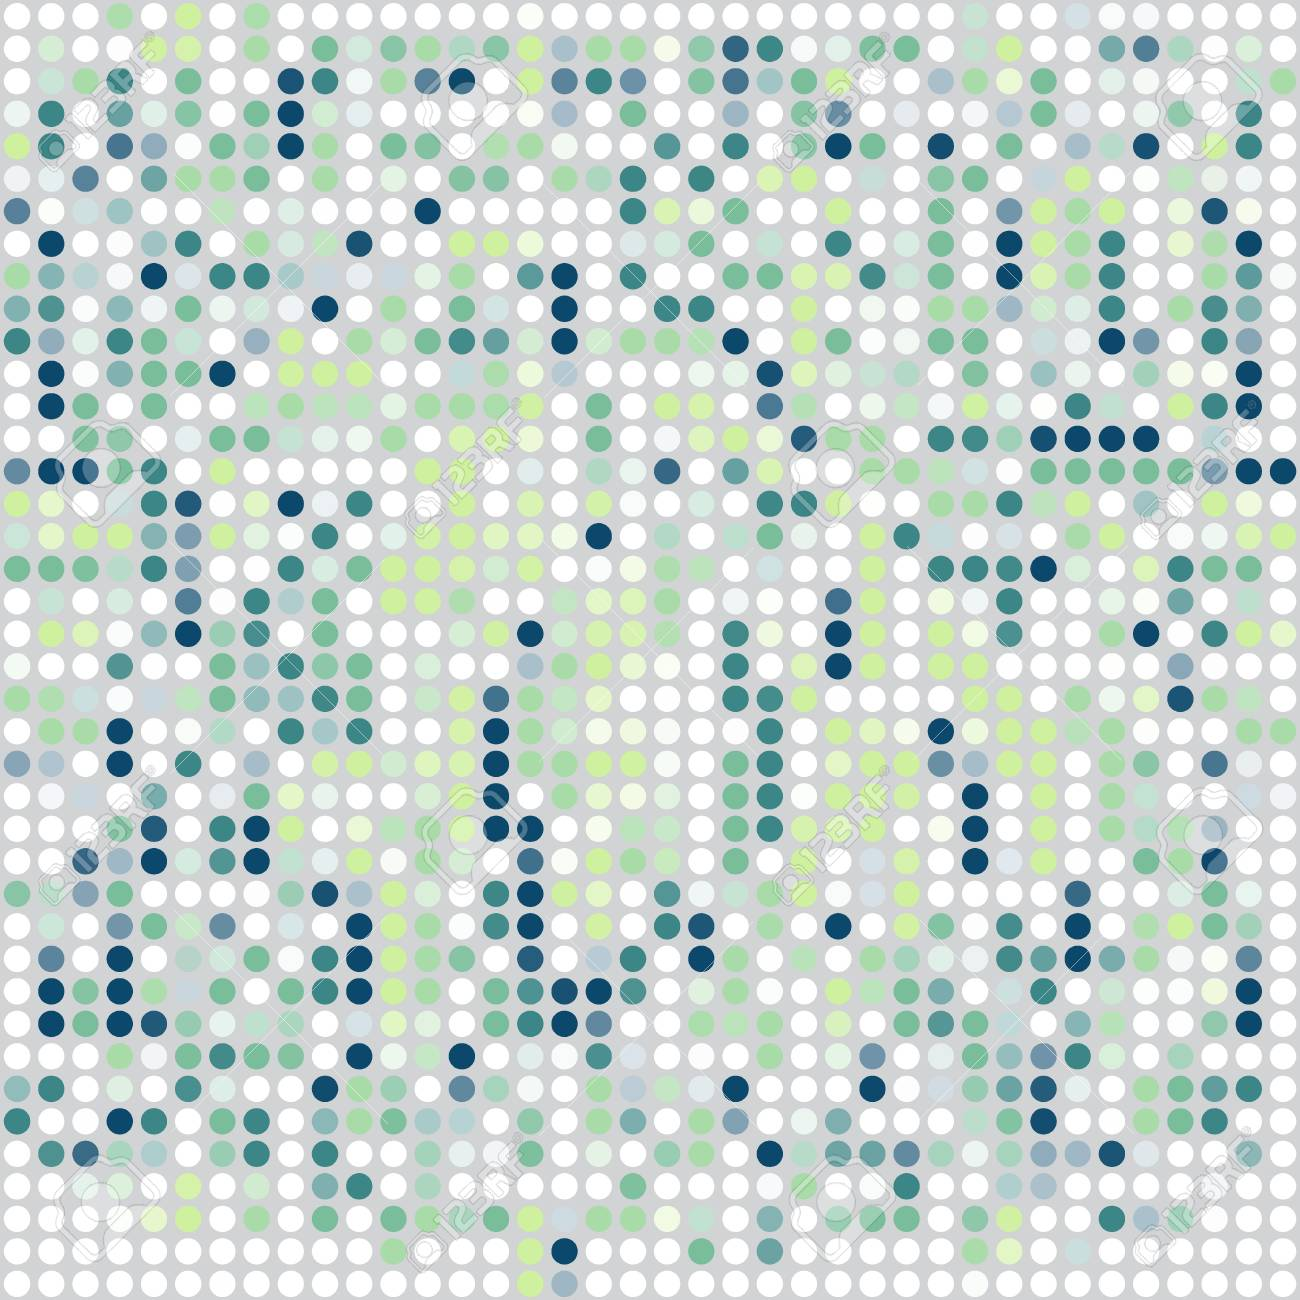 mosaic ornamental seamless pattern in shades of green Stock Vector - 18784187